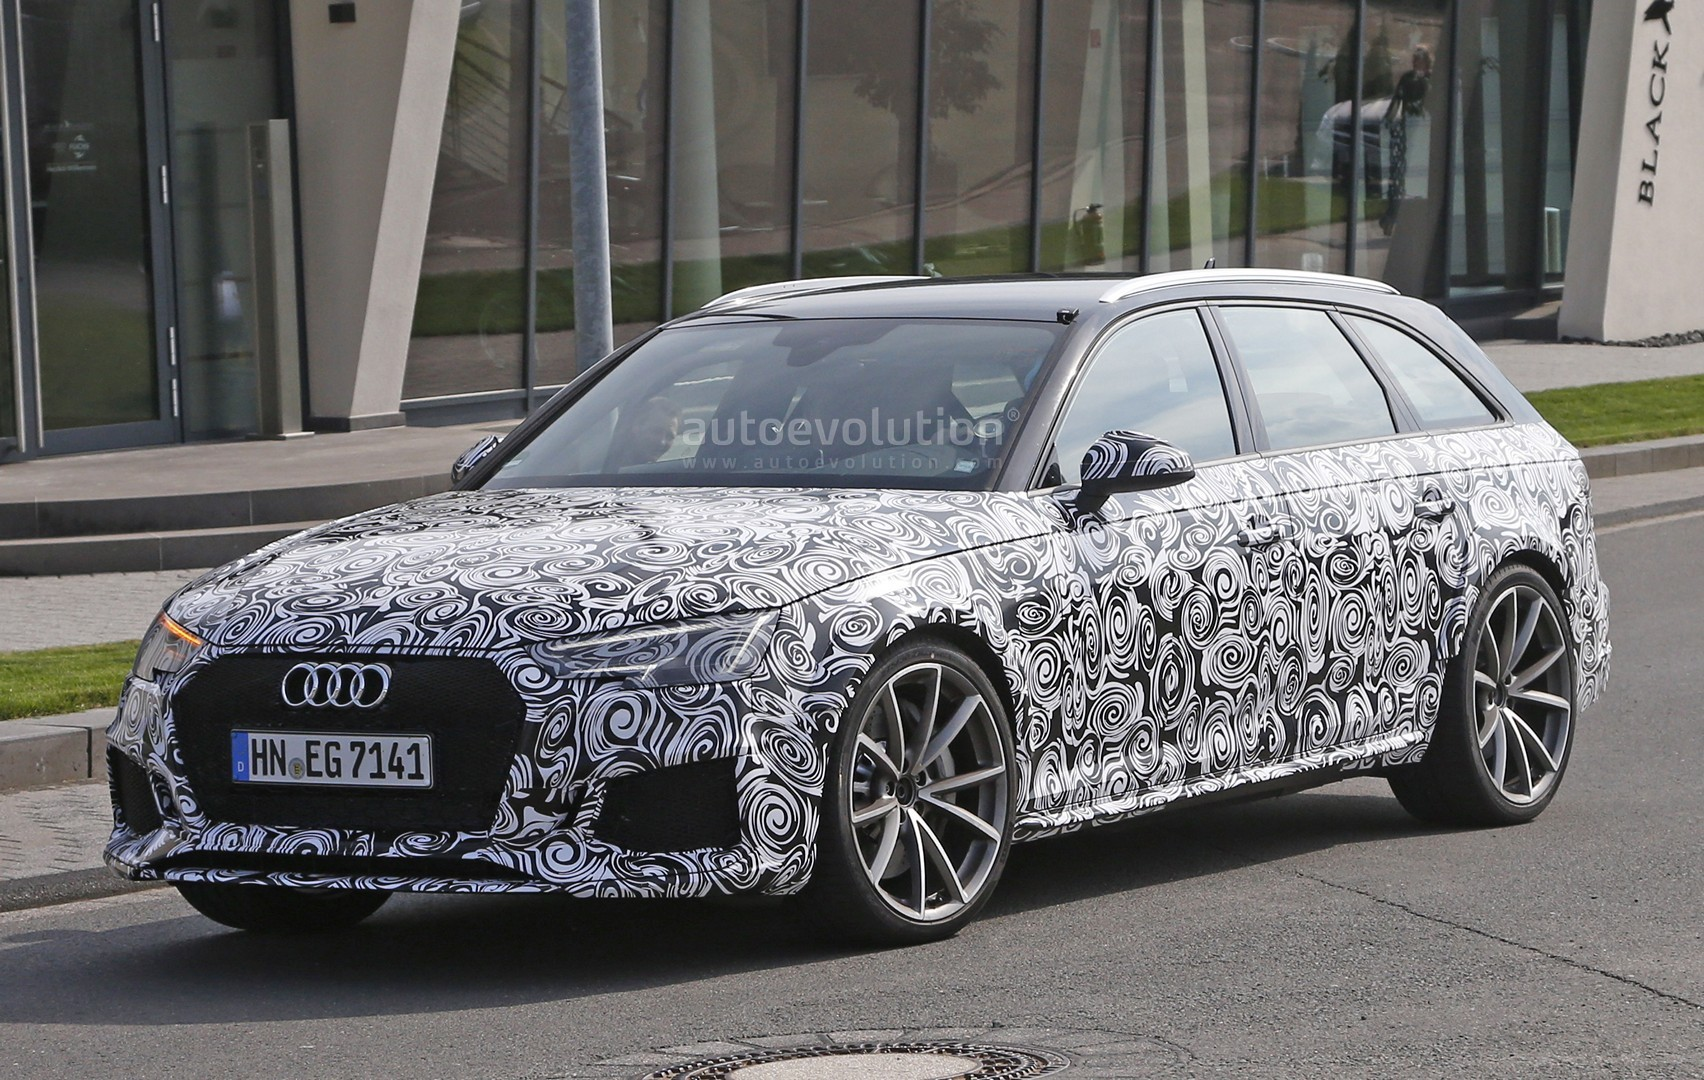 Spyshots 2018 Audi Rs4 Avant Prototype Looks Very Muscular Autoevolution